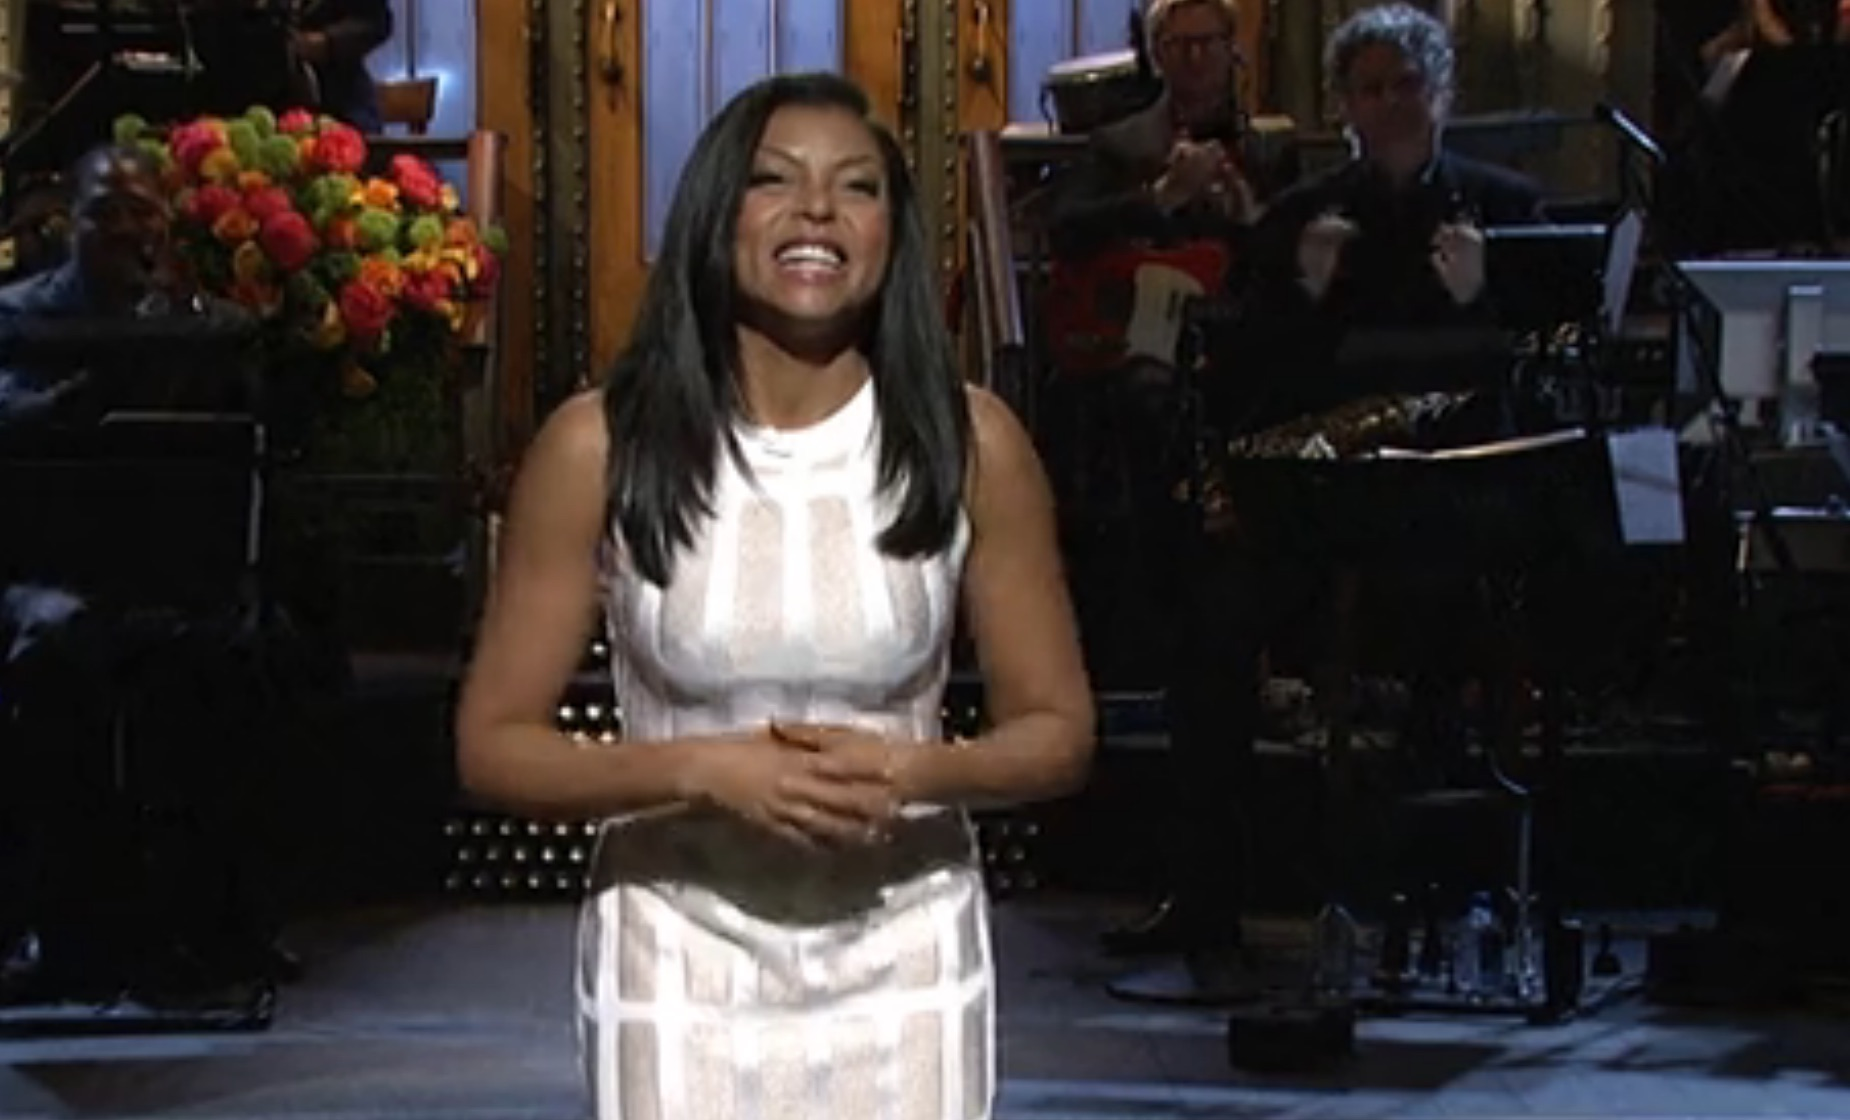 Taraji P. Henson kills it in her 'SNL' opening monologue. Seriously, check it out.